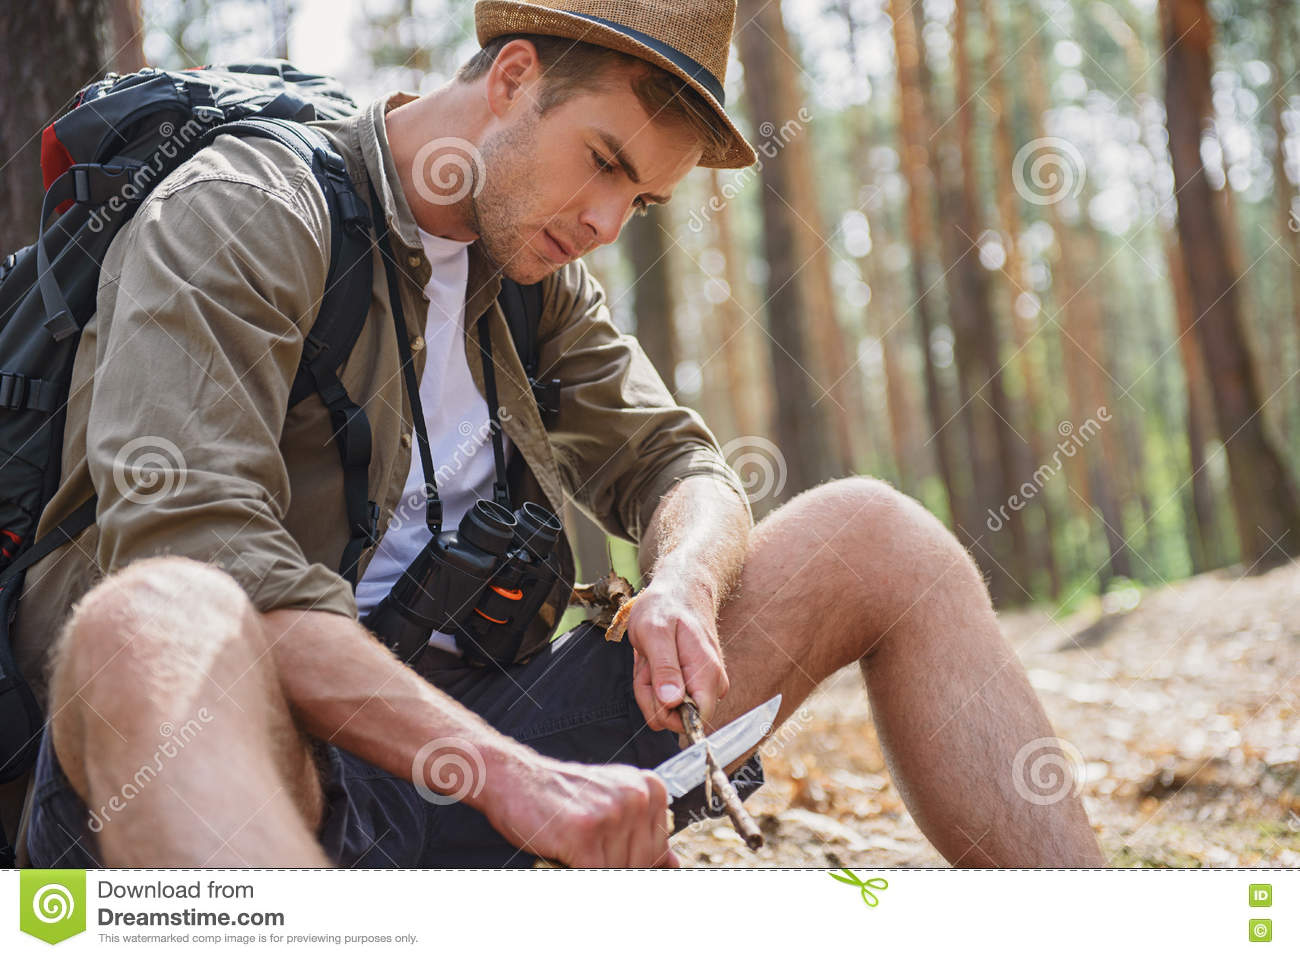 174ba62588e Skillful Man Whittling Pole In Forest Stock Image - Image of outside ...